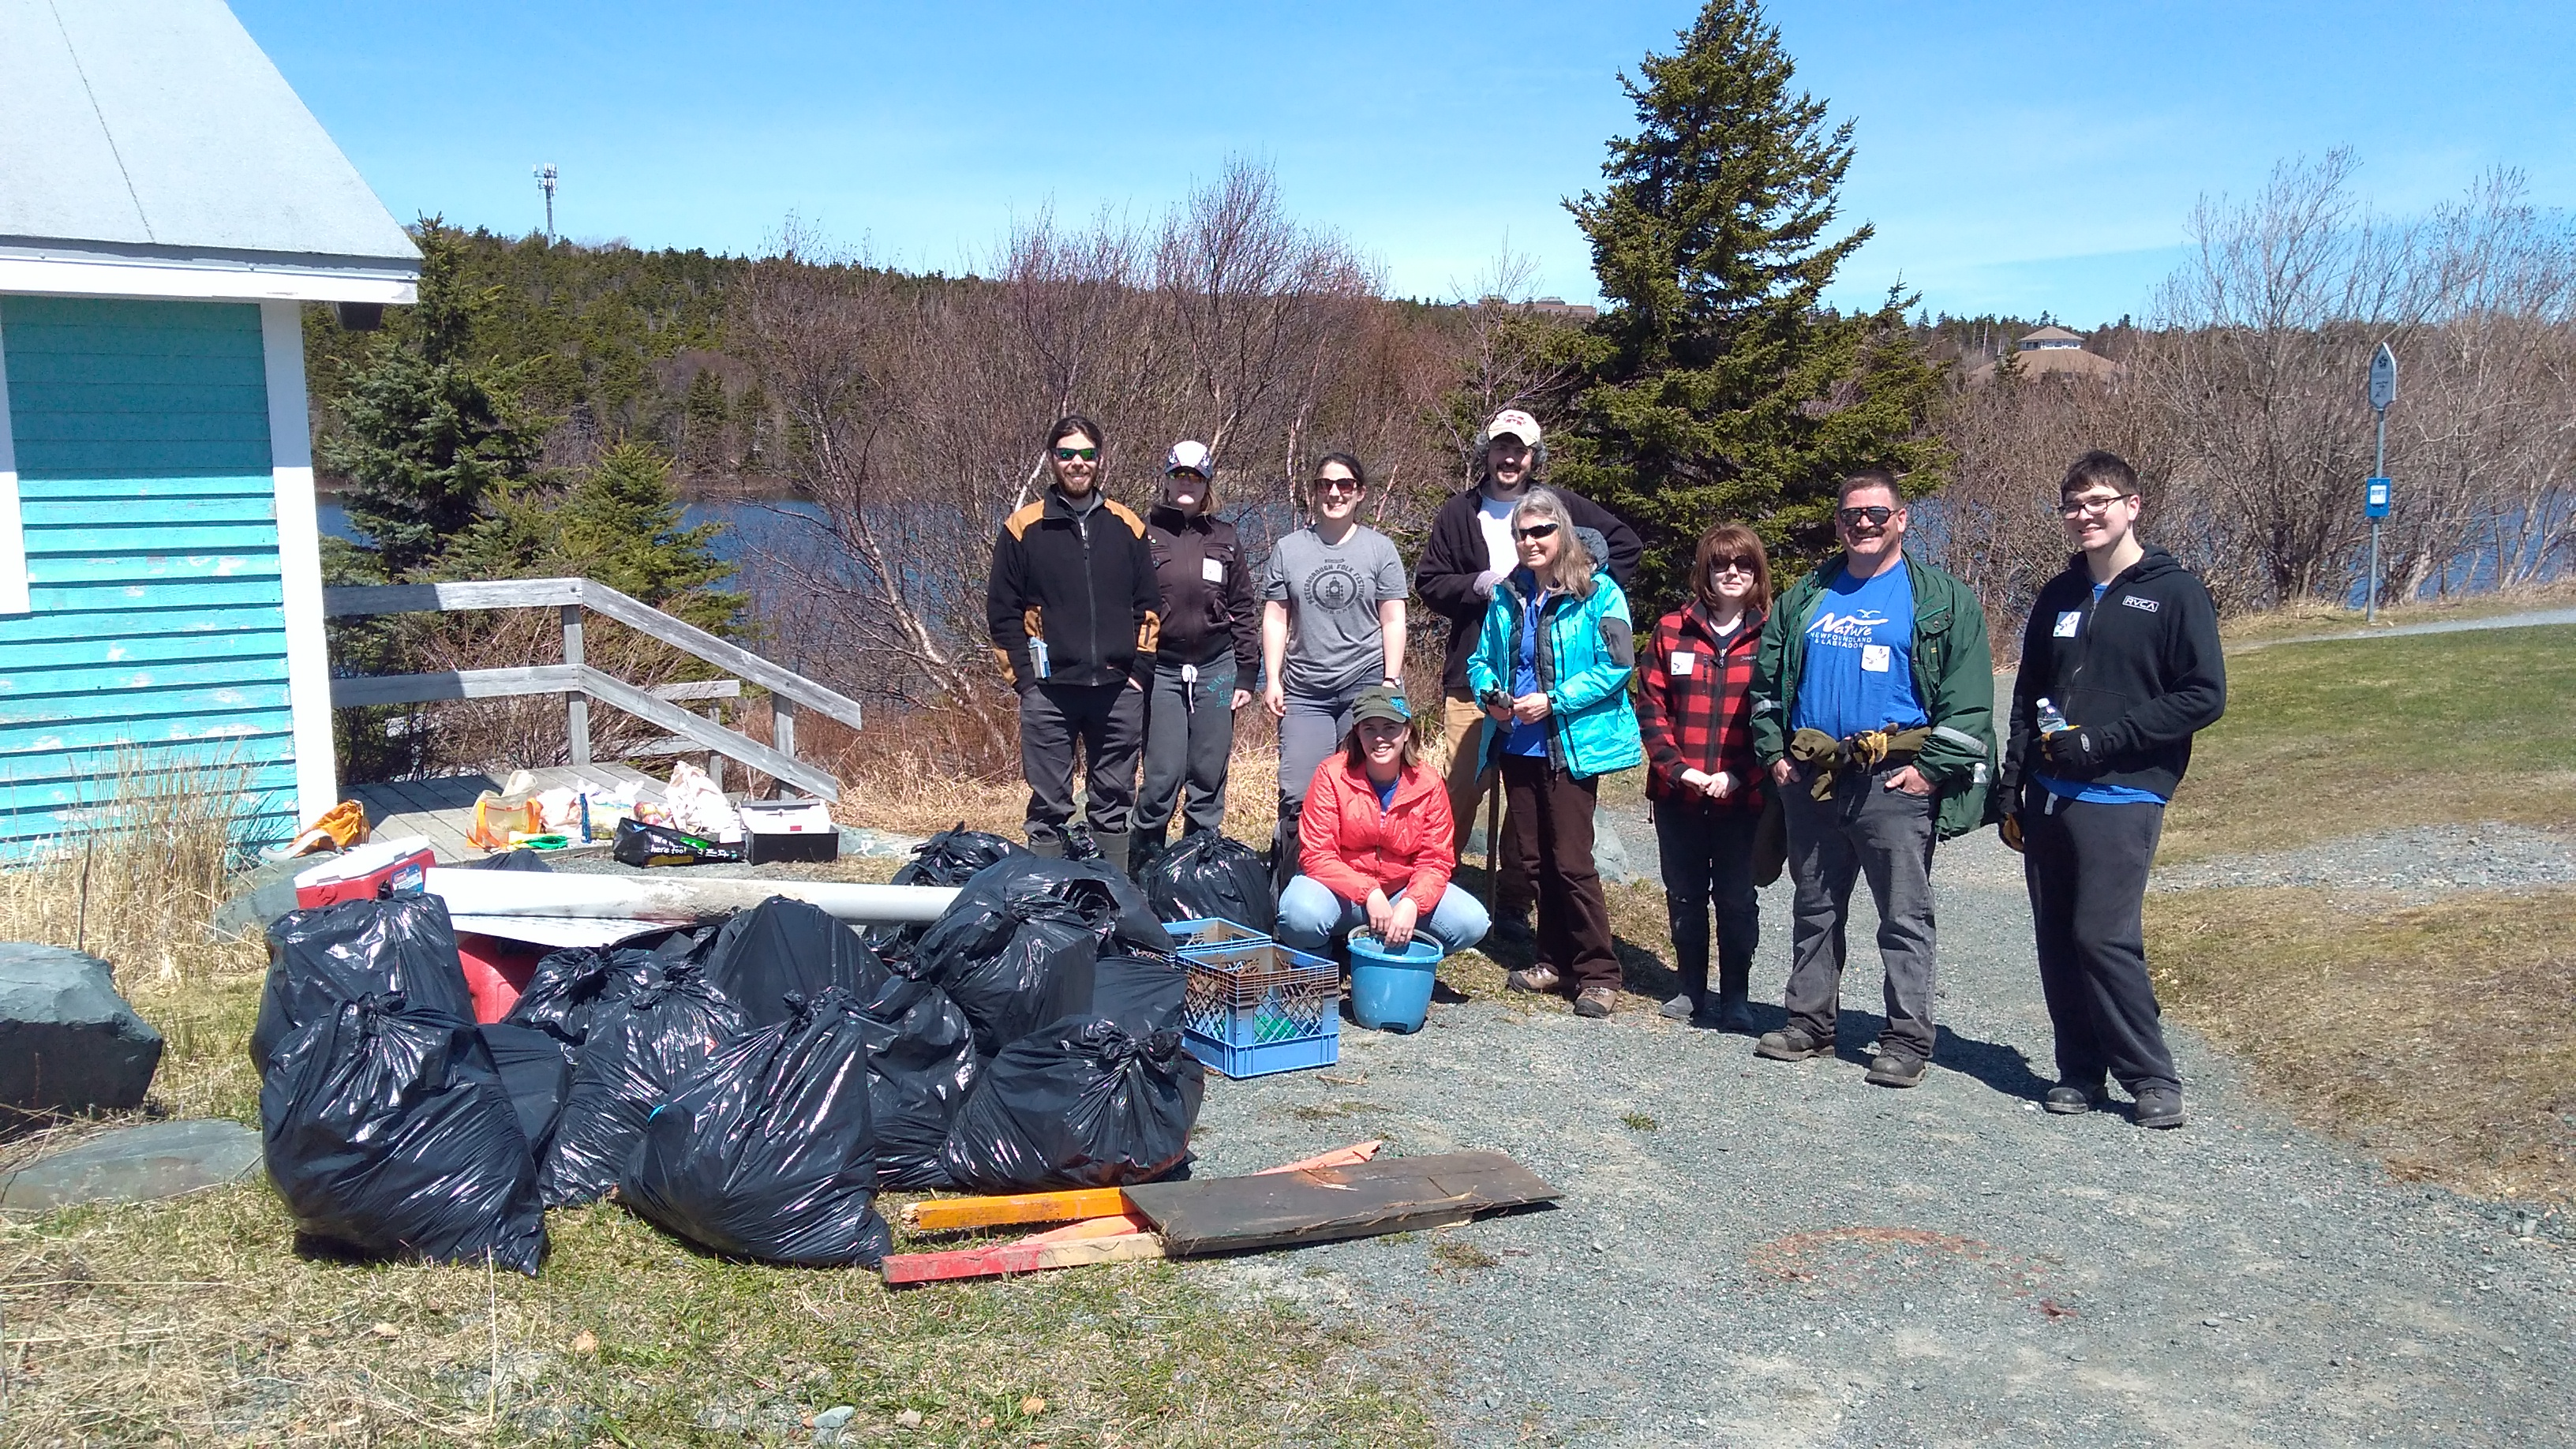 Trip Report – Annual Long Pond Clean Up